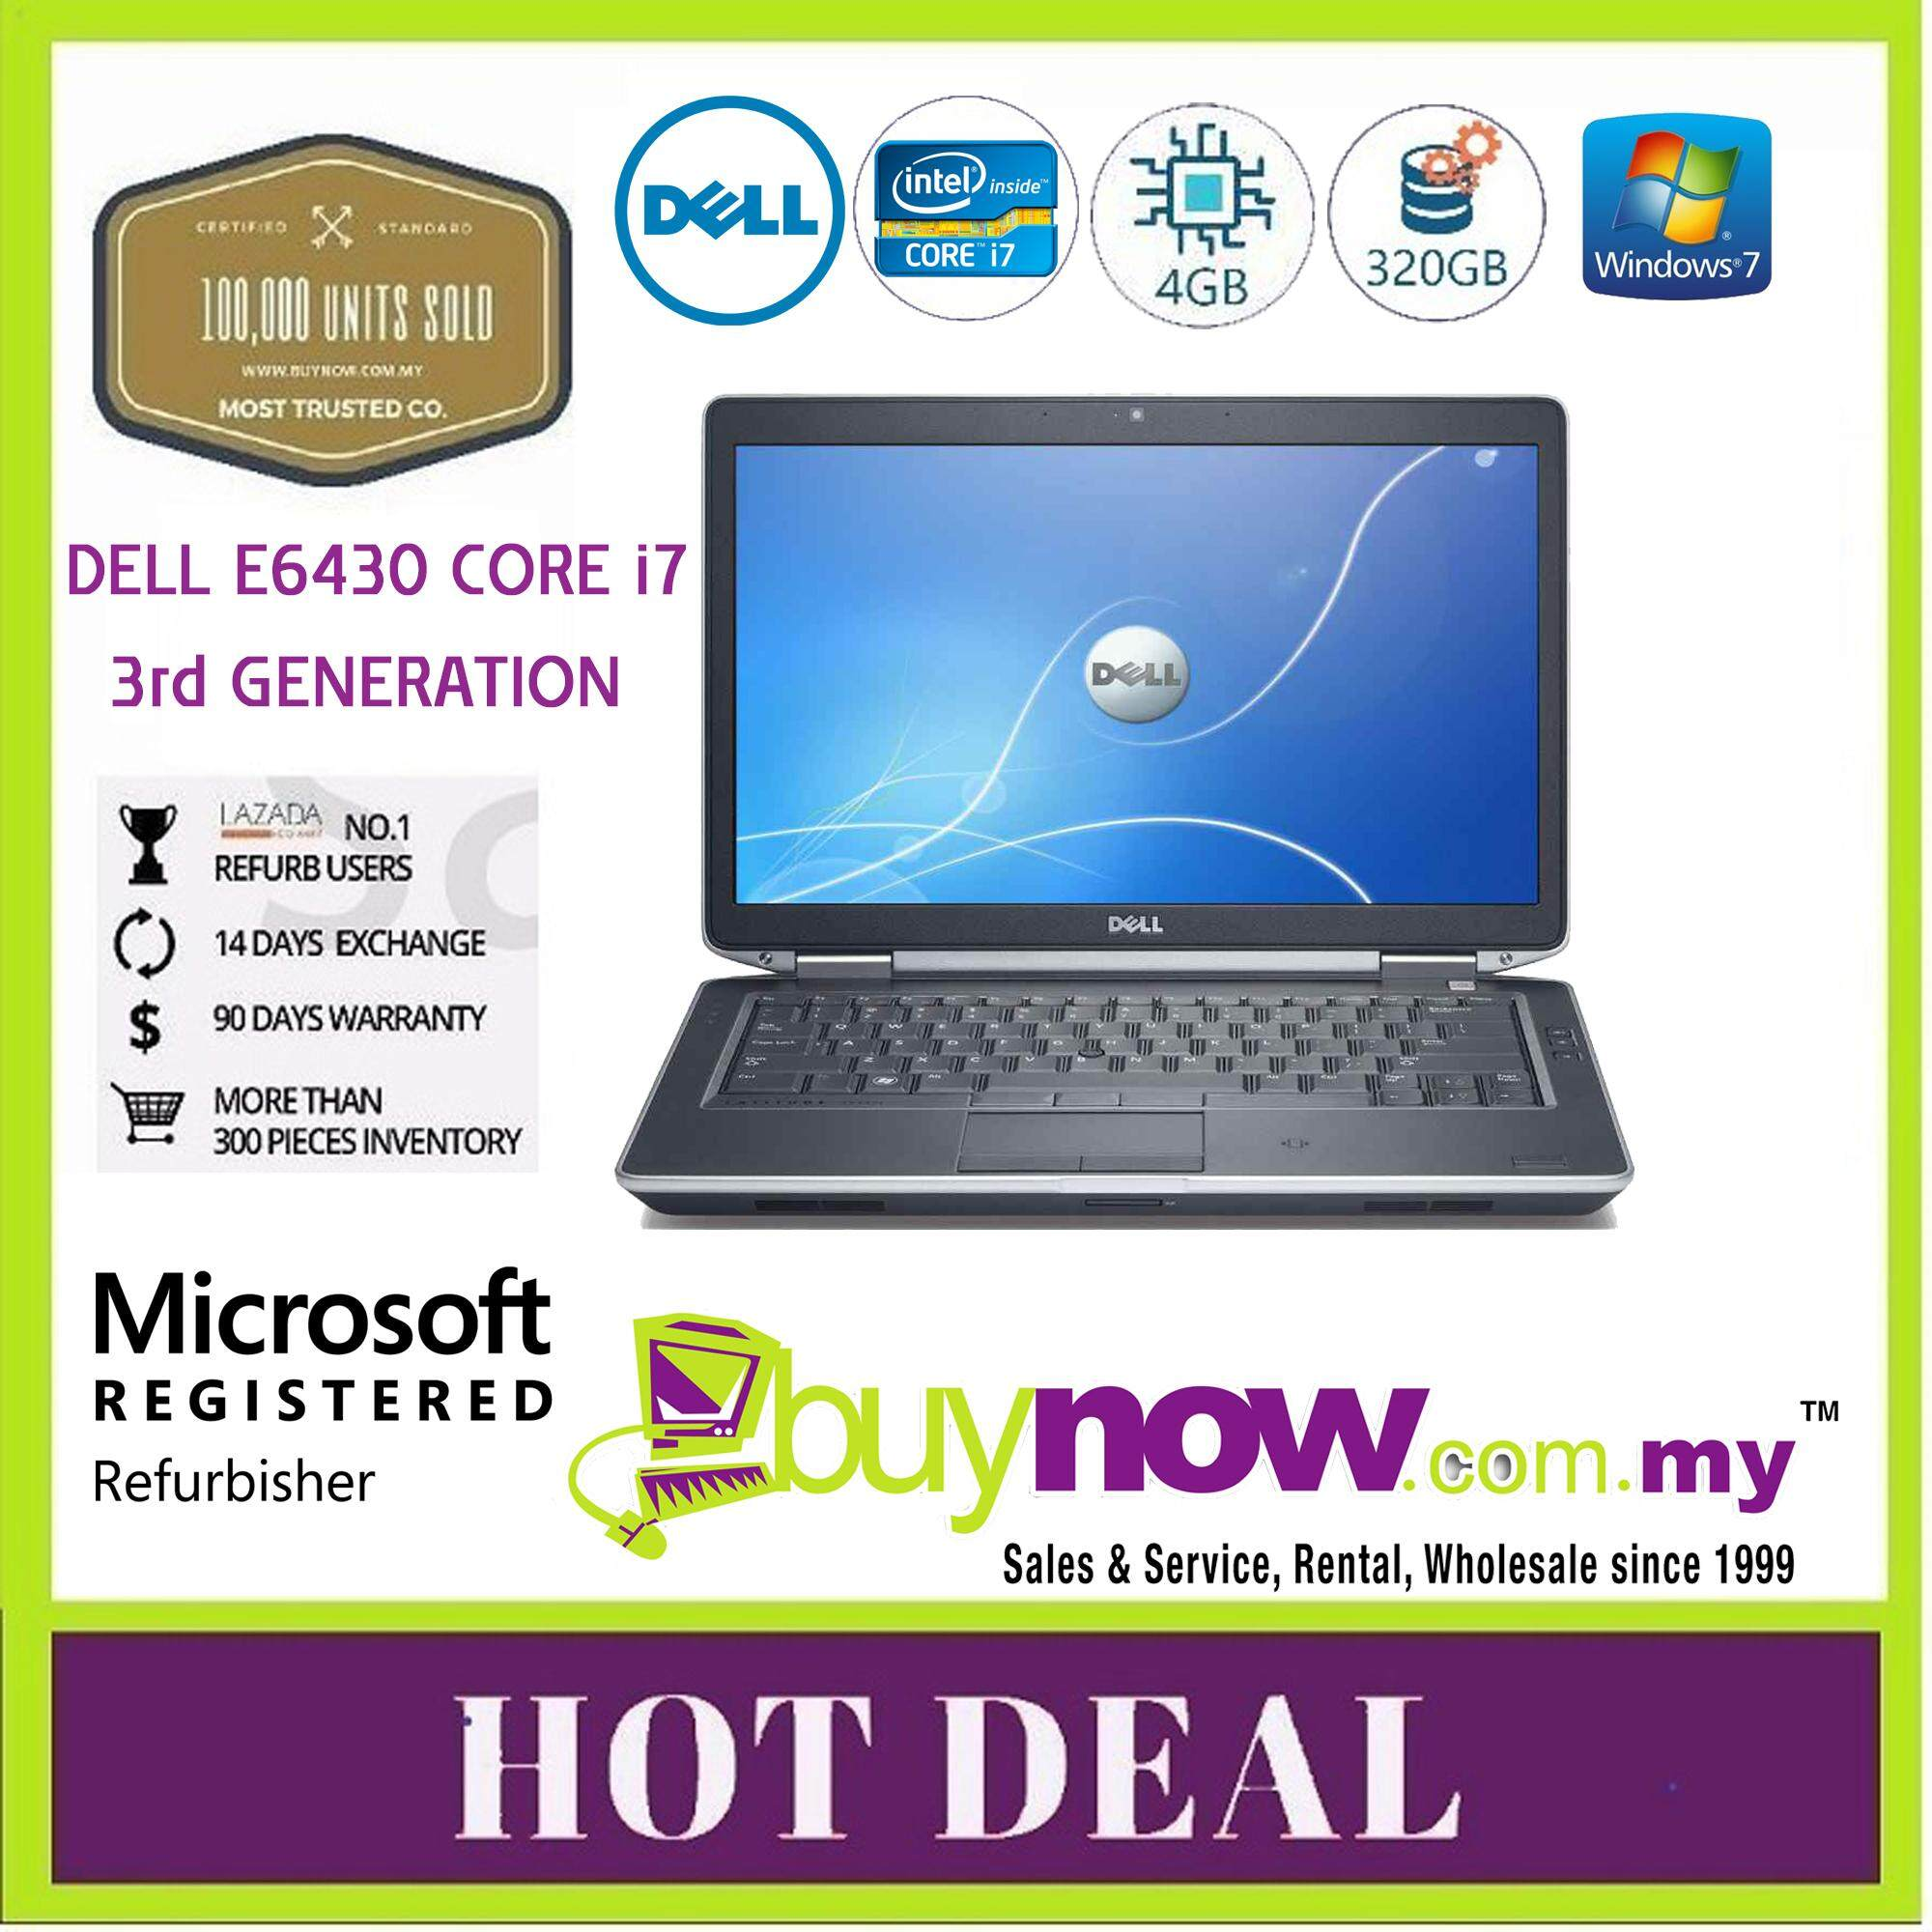 Refurbished Dell Latitude E6430 Laptop, Corei7,4GB,320GB WINDOWS 7 PRO Malaysia